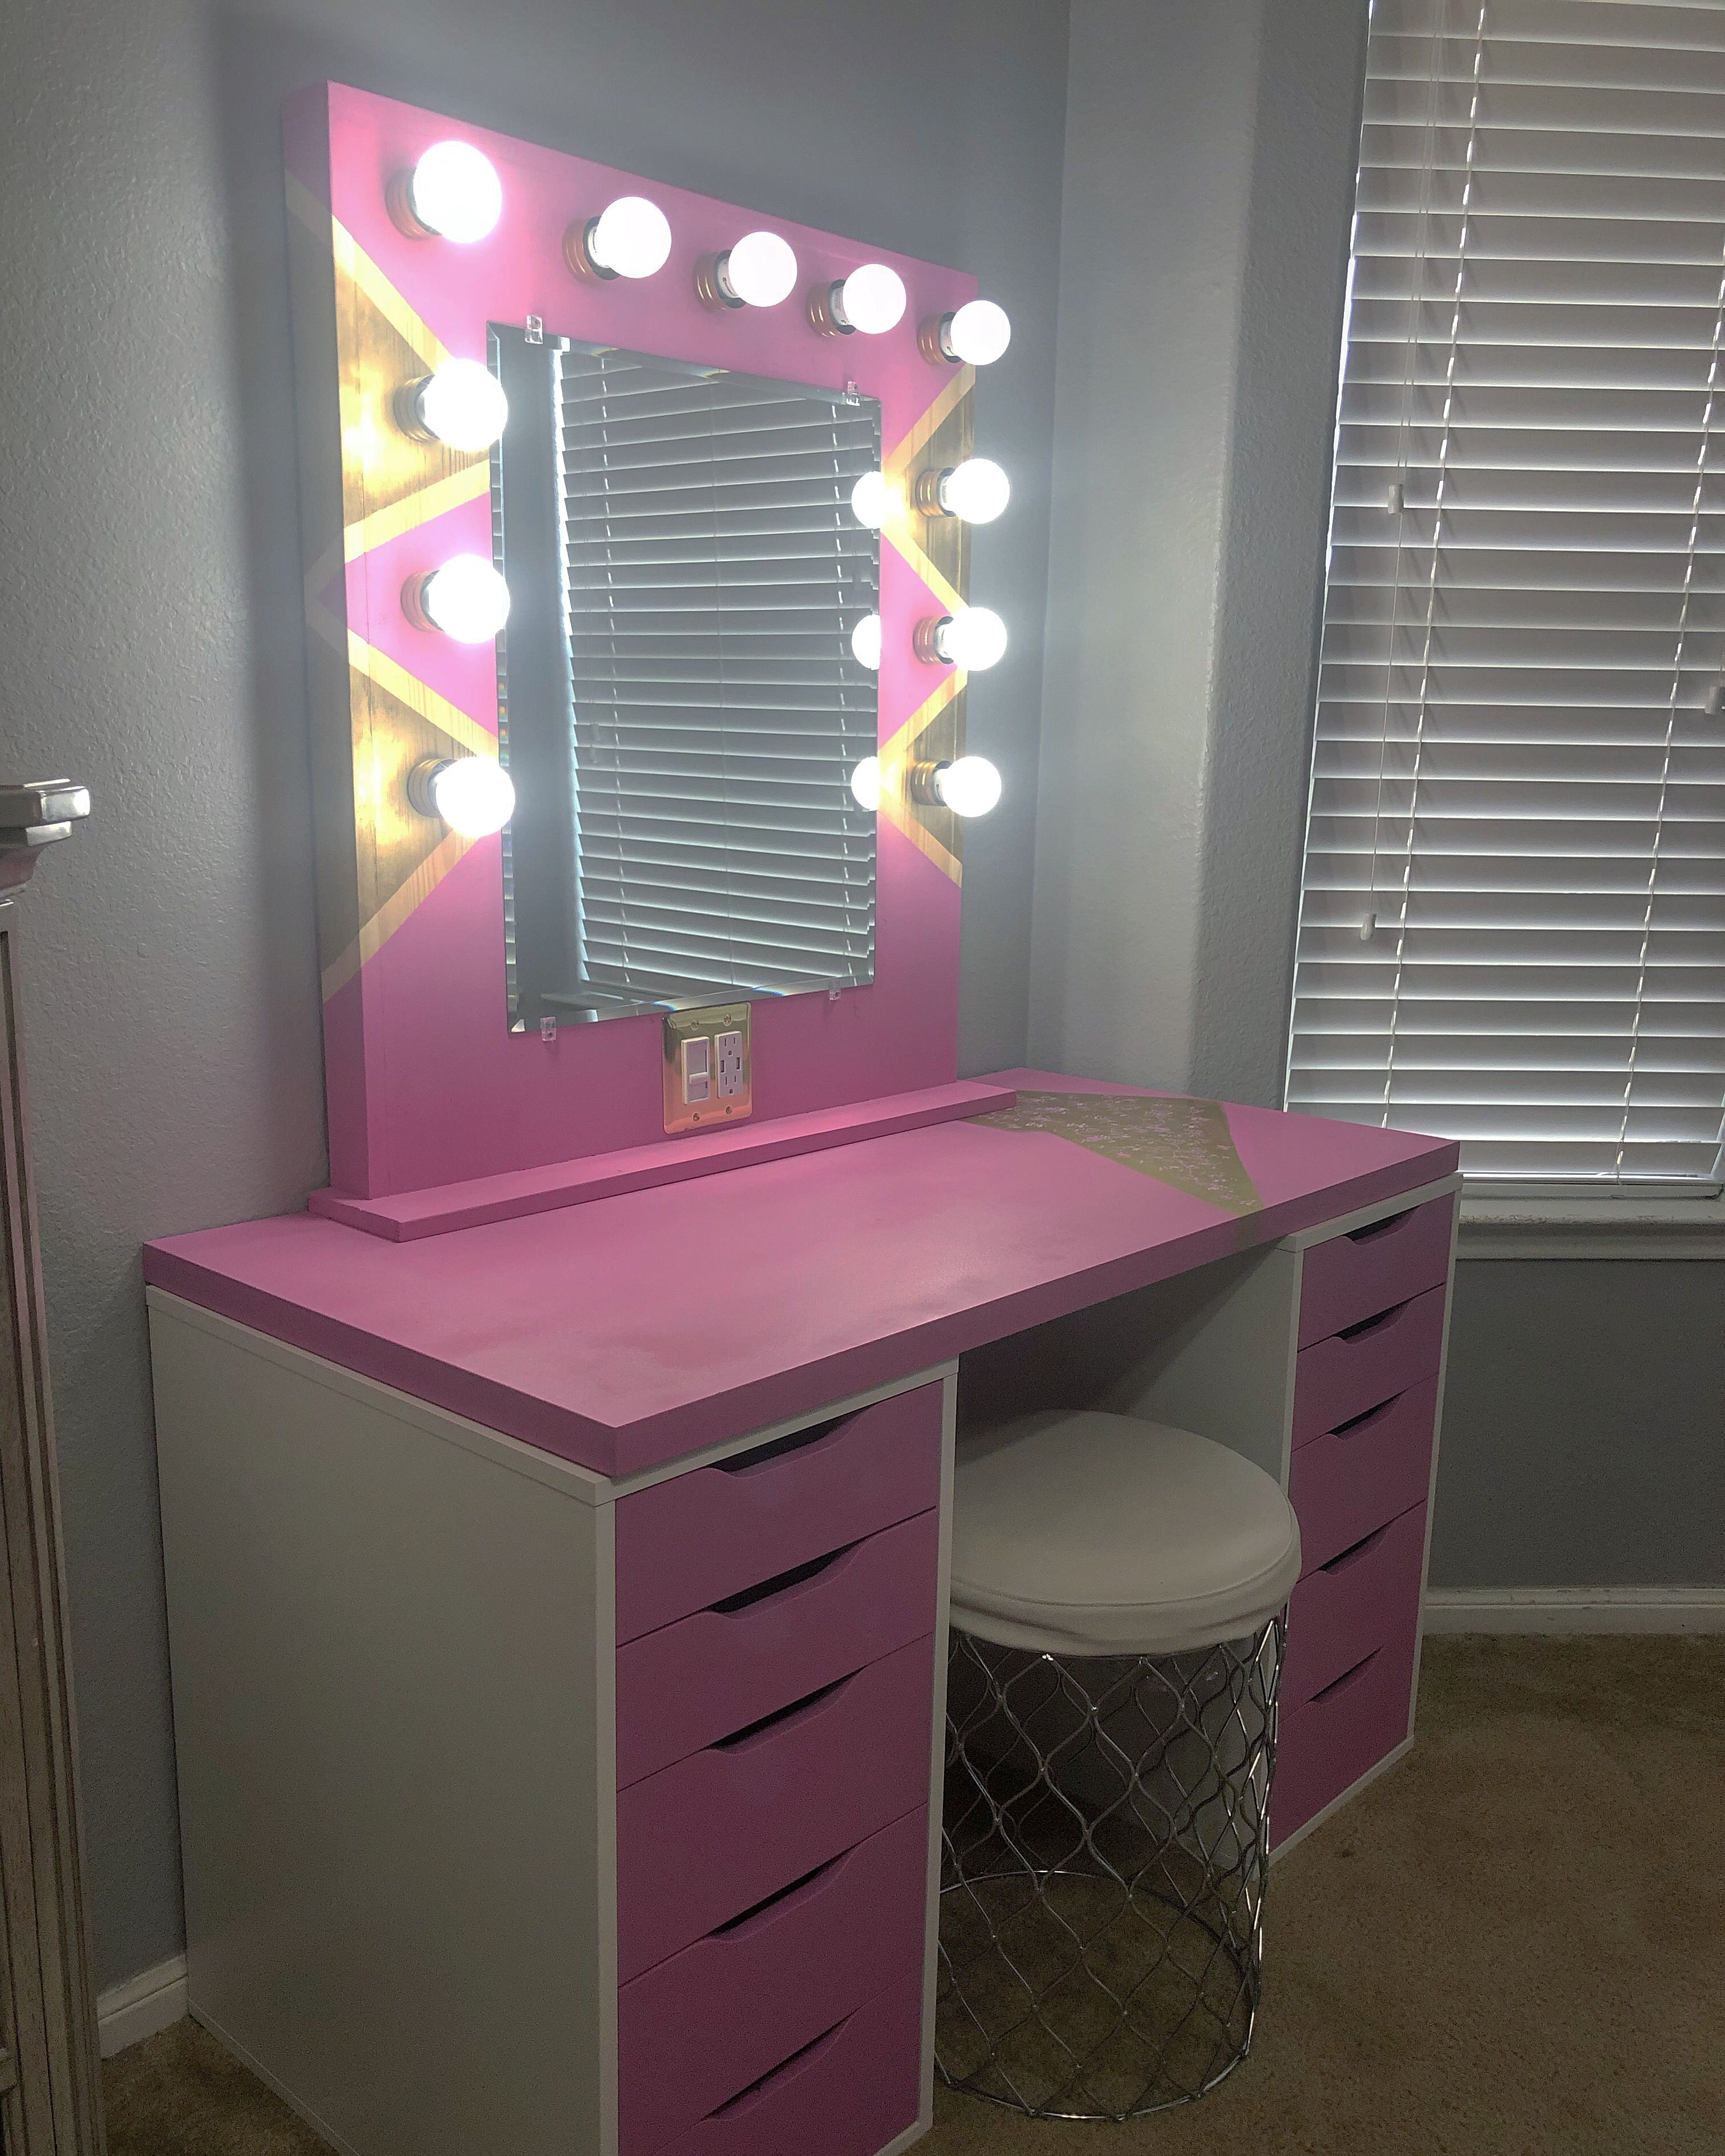 Checkout this amazing Pink & Gold Makeup Hollywood Vanity